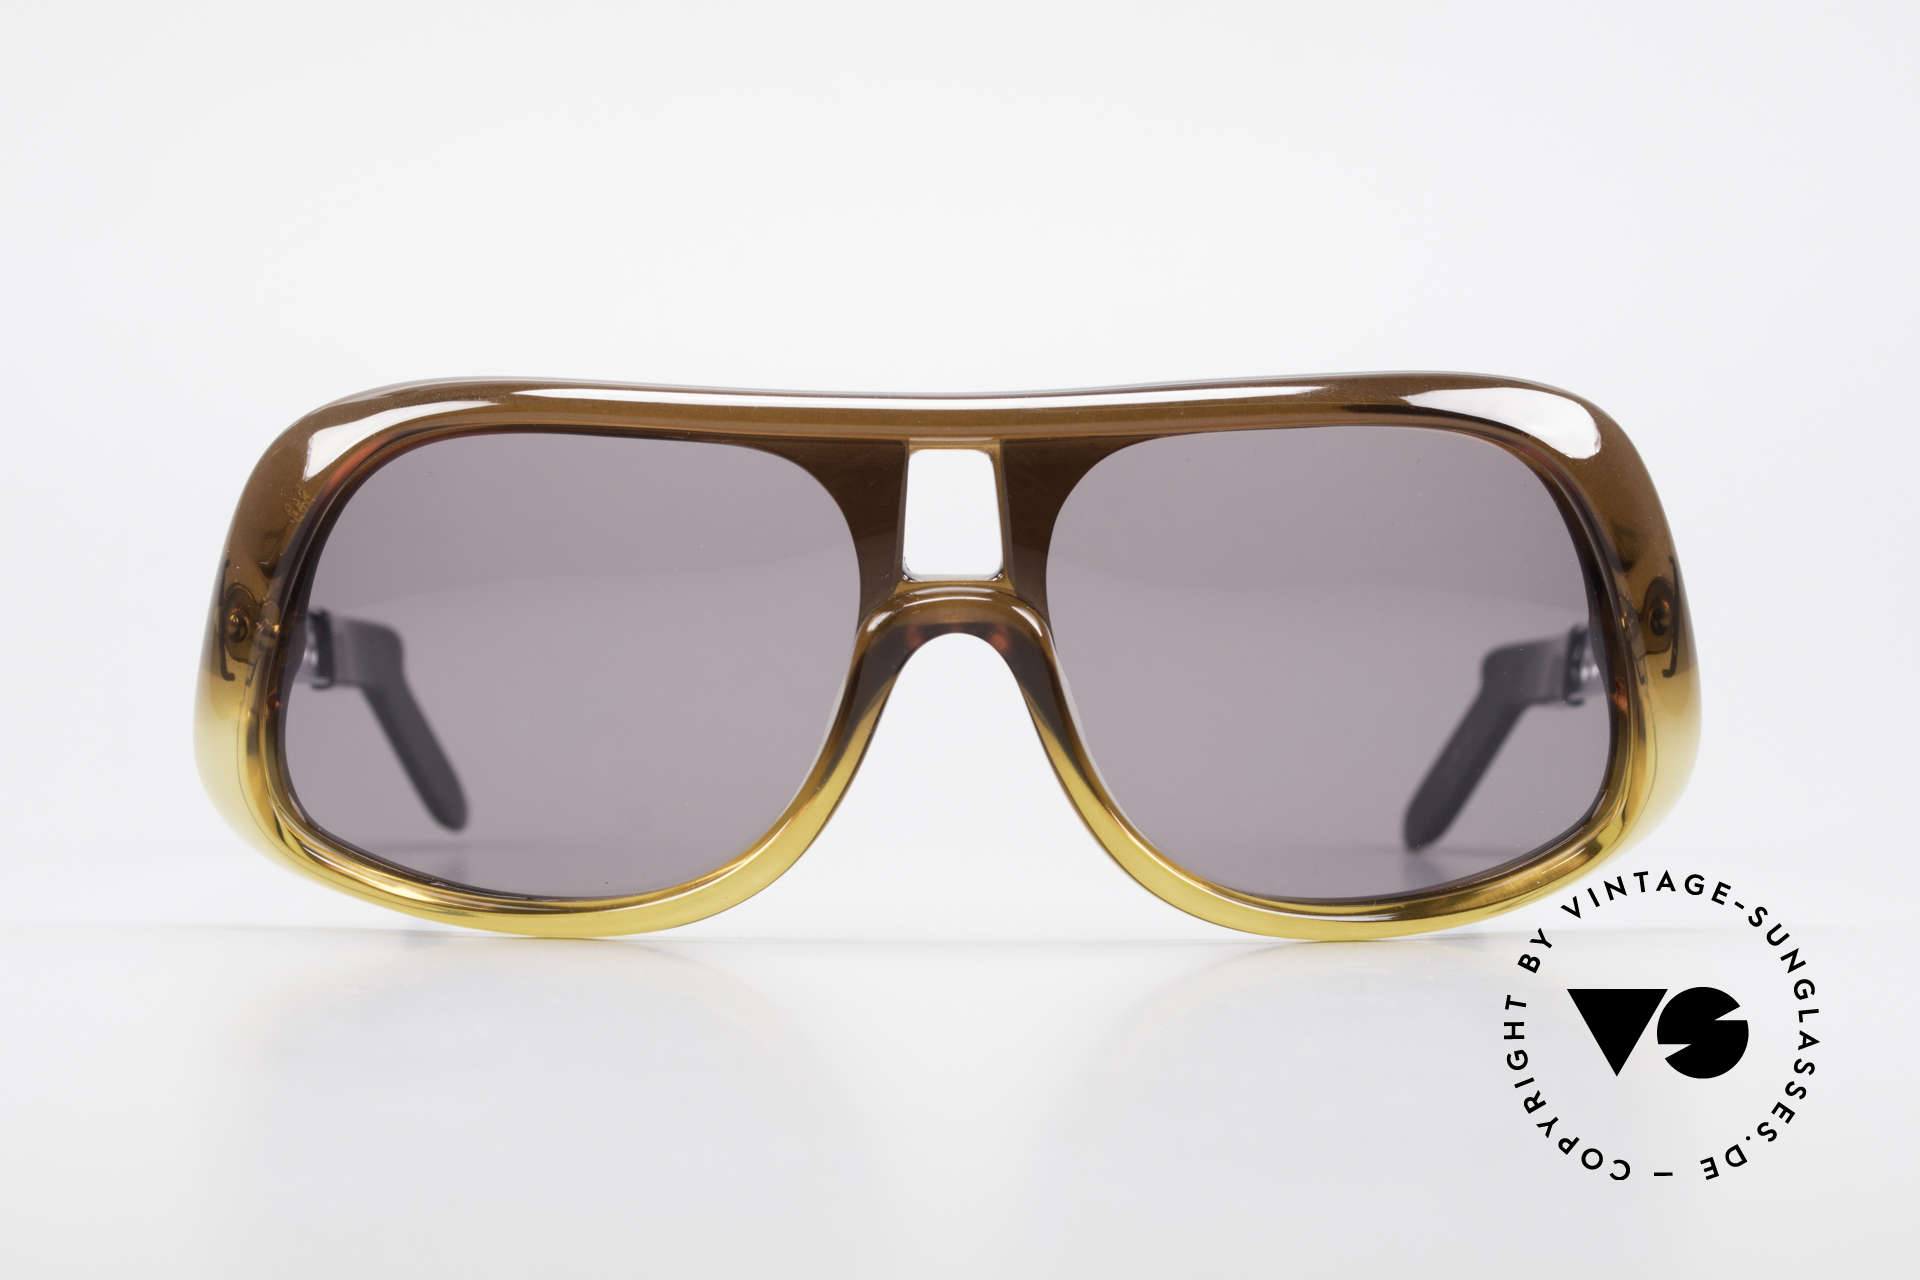 Carrera 549 Leo DiCaprio Movie Sunglasses, Leonardo DiCaprio movie sunglasses: in Tarantinos, Made for Men